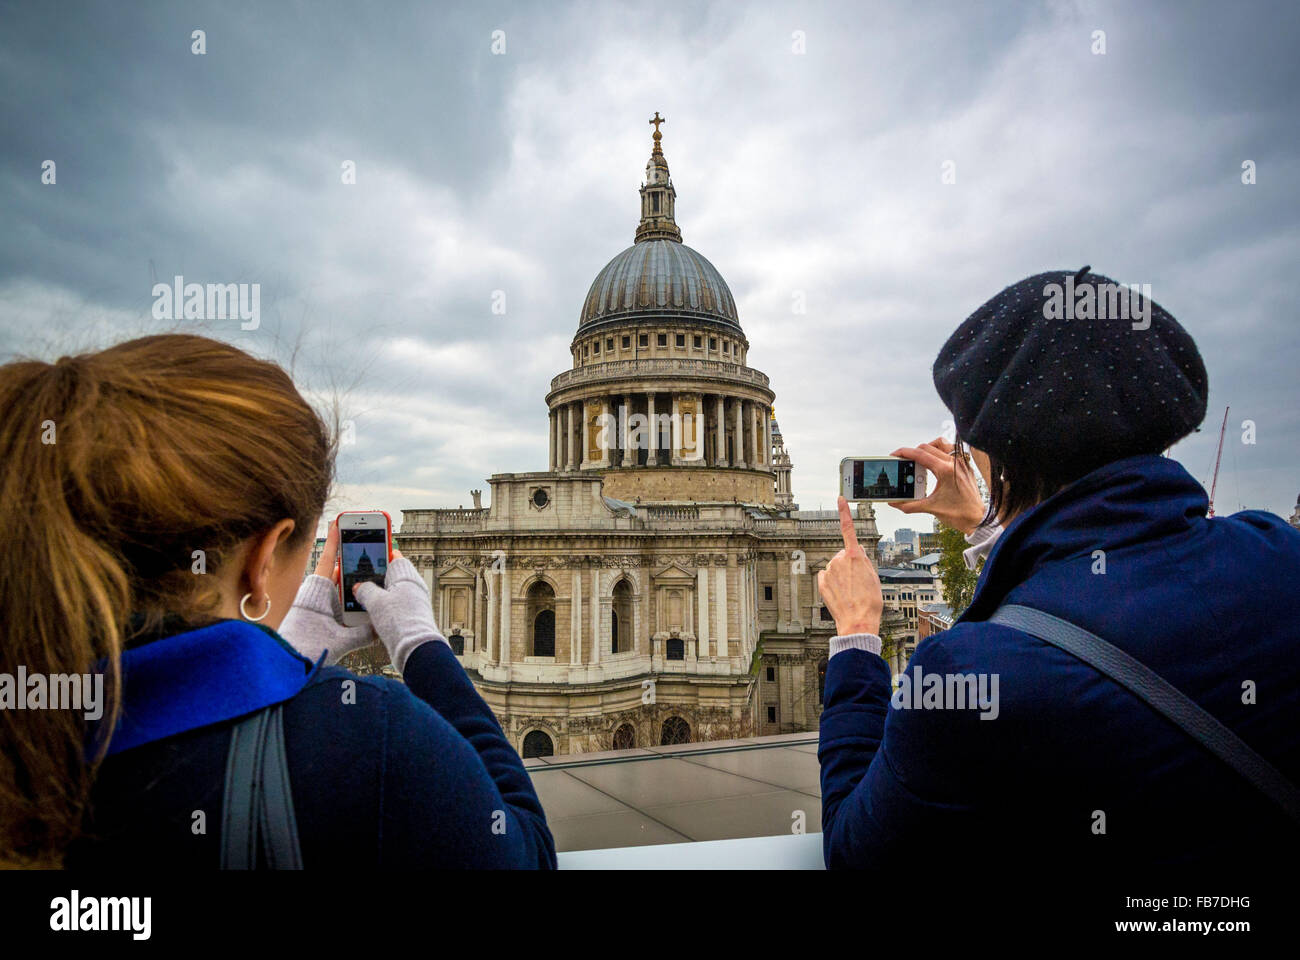 Two female tourists taking photos of St Paul's Cathedral on iphones - Stock Image